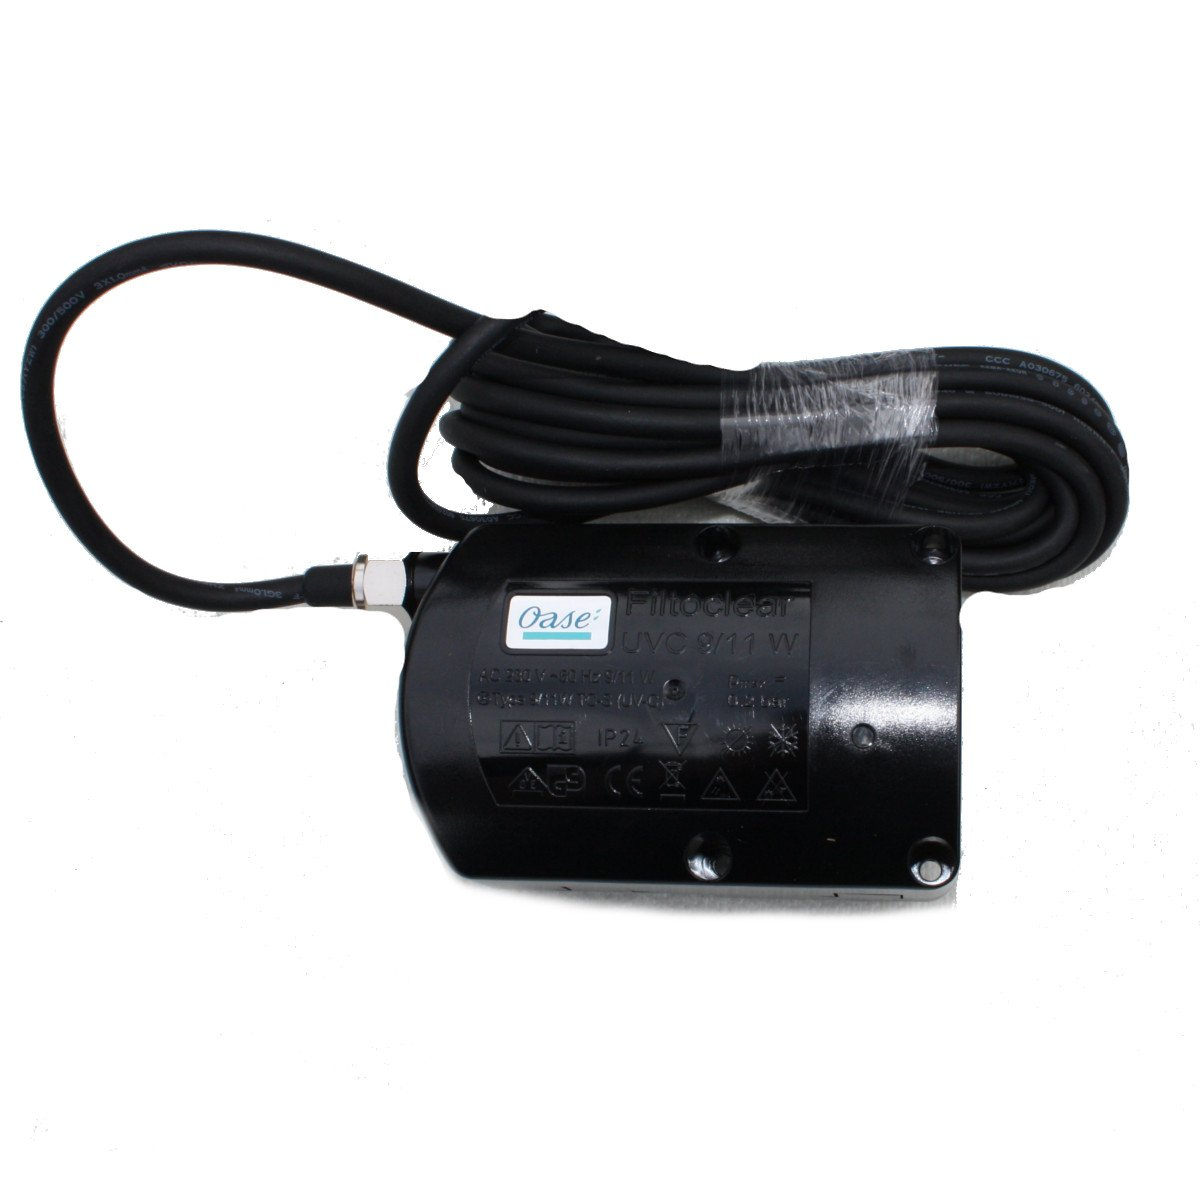 Oase Filtoclear Electrical Ballast Unit 9/11w by Oase 14360